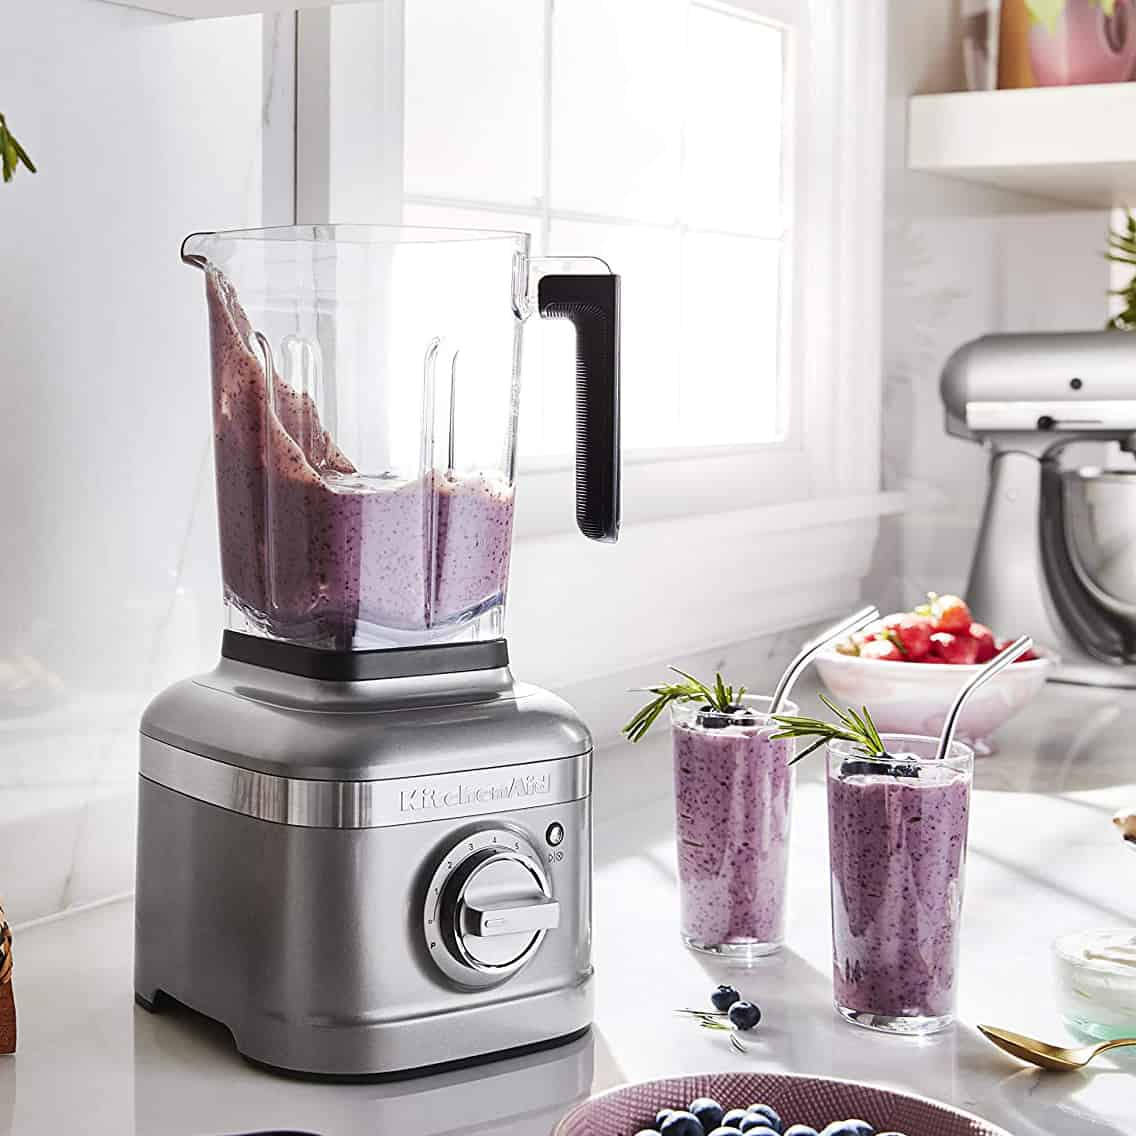 kitchenaid k400 blender review